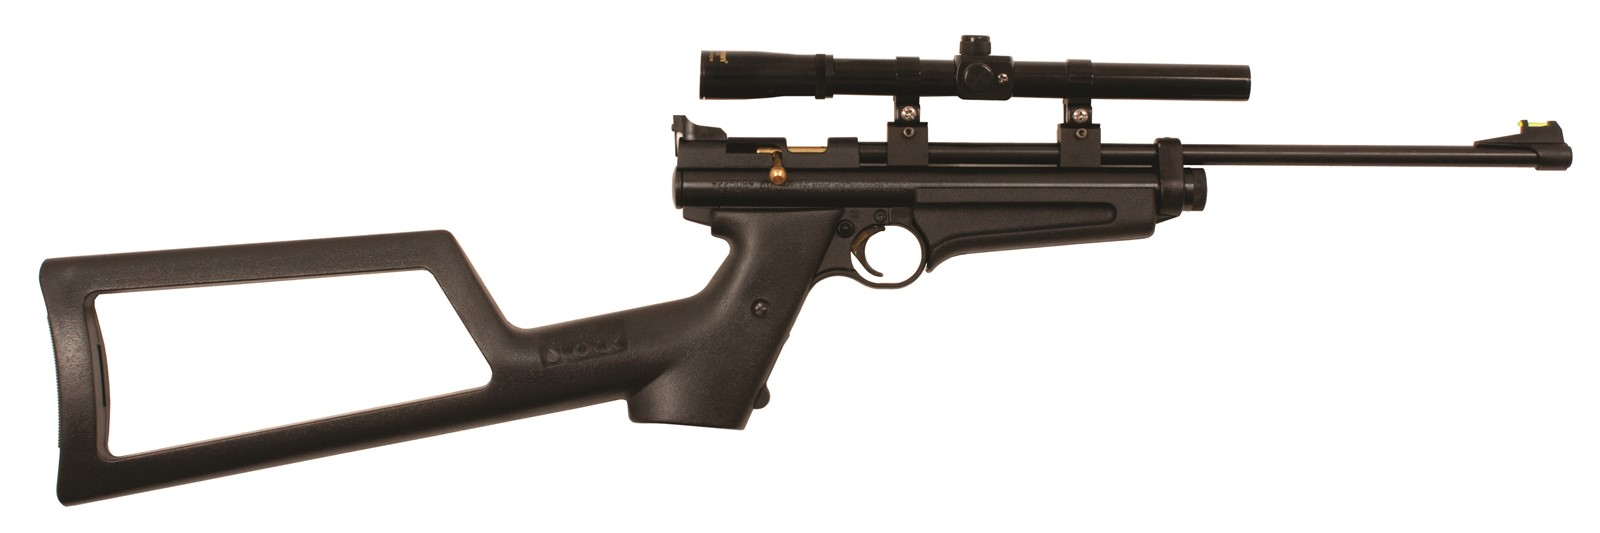 Crosman 2250 Co2 Rifle.